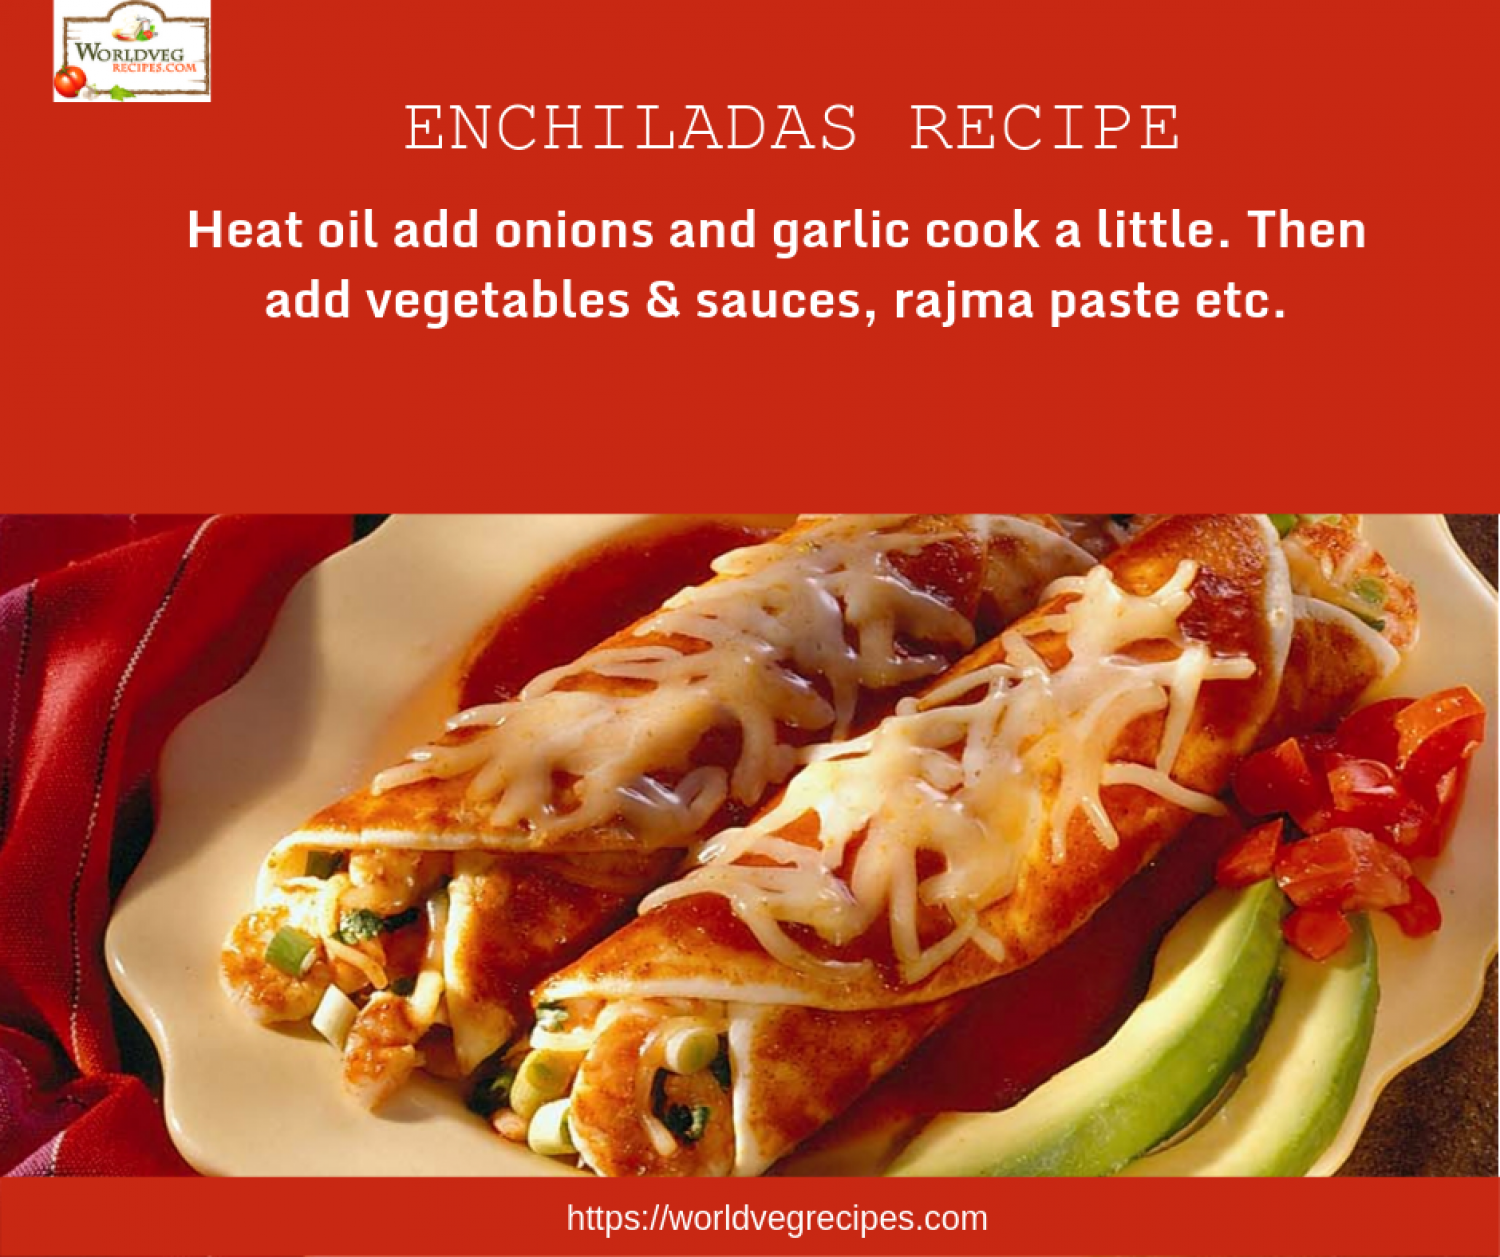 How To Make Enchiladas | Enchiladas Recipe | Enchilada Sauce Recipe Infographic